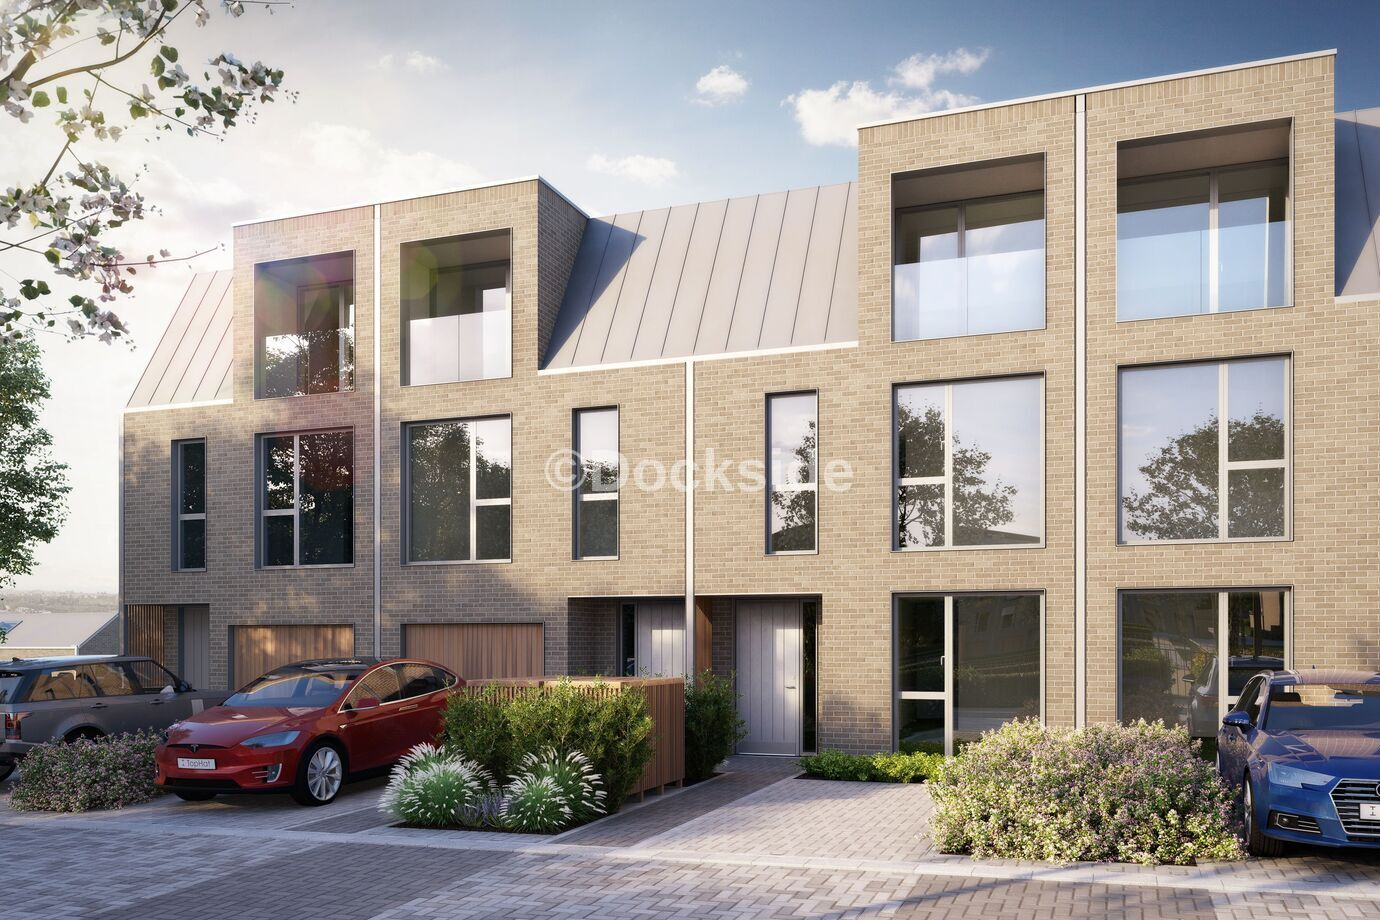 5 bed house for sale in Barrack Hill - Property Image 1